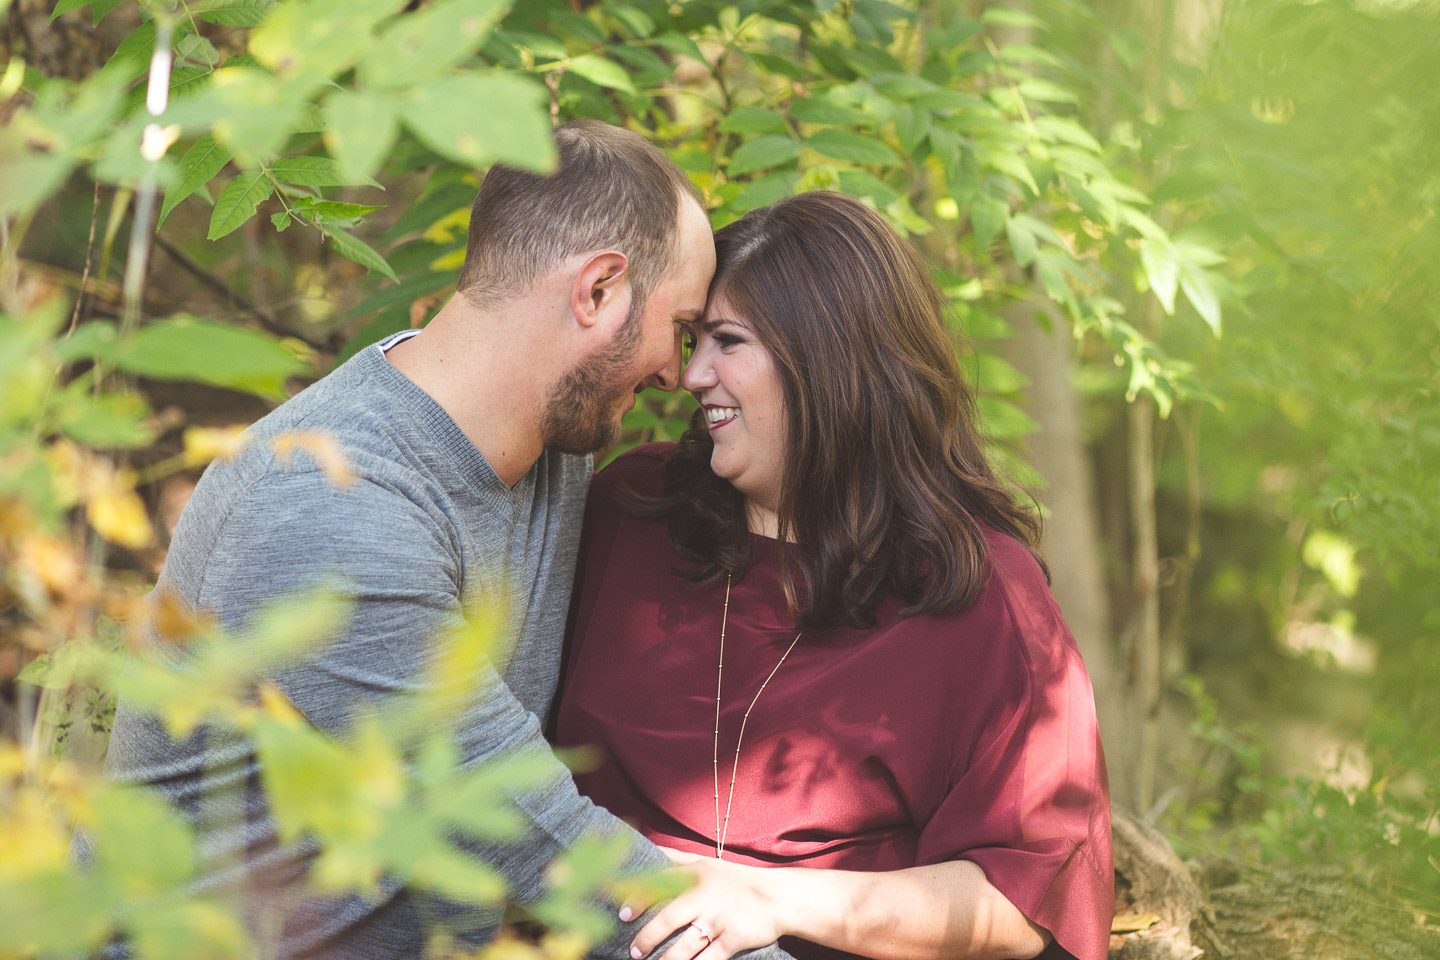 Engagement-Northville-Mill-Race-Village-David-Danielle-Sitting-Shoot-Through-Leaves